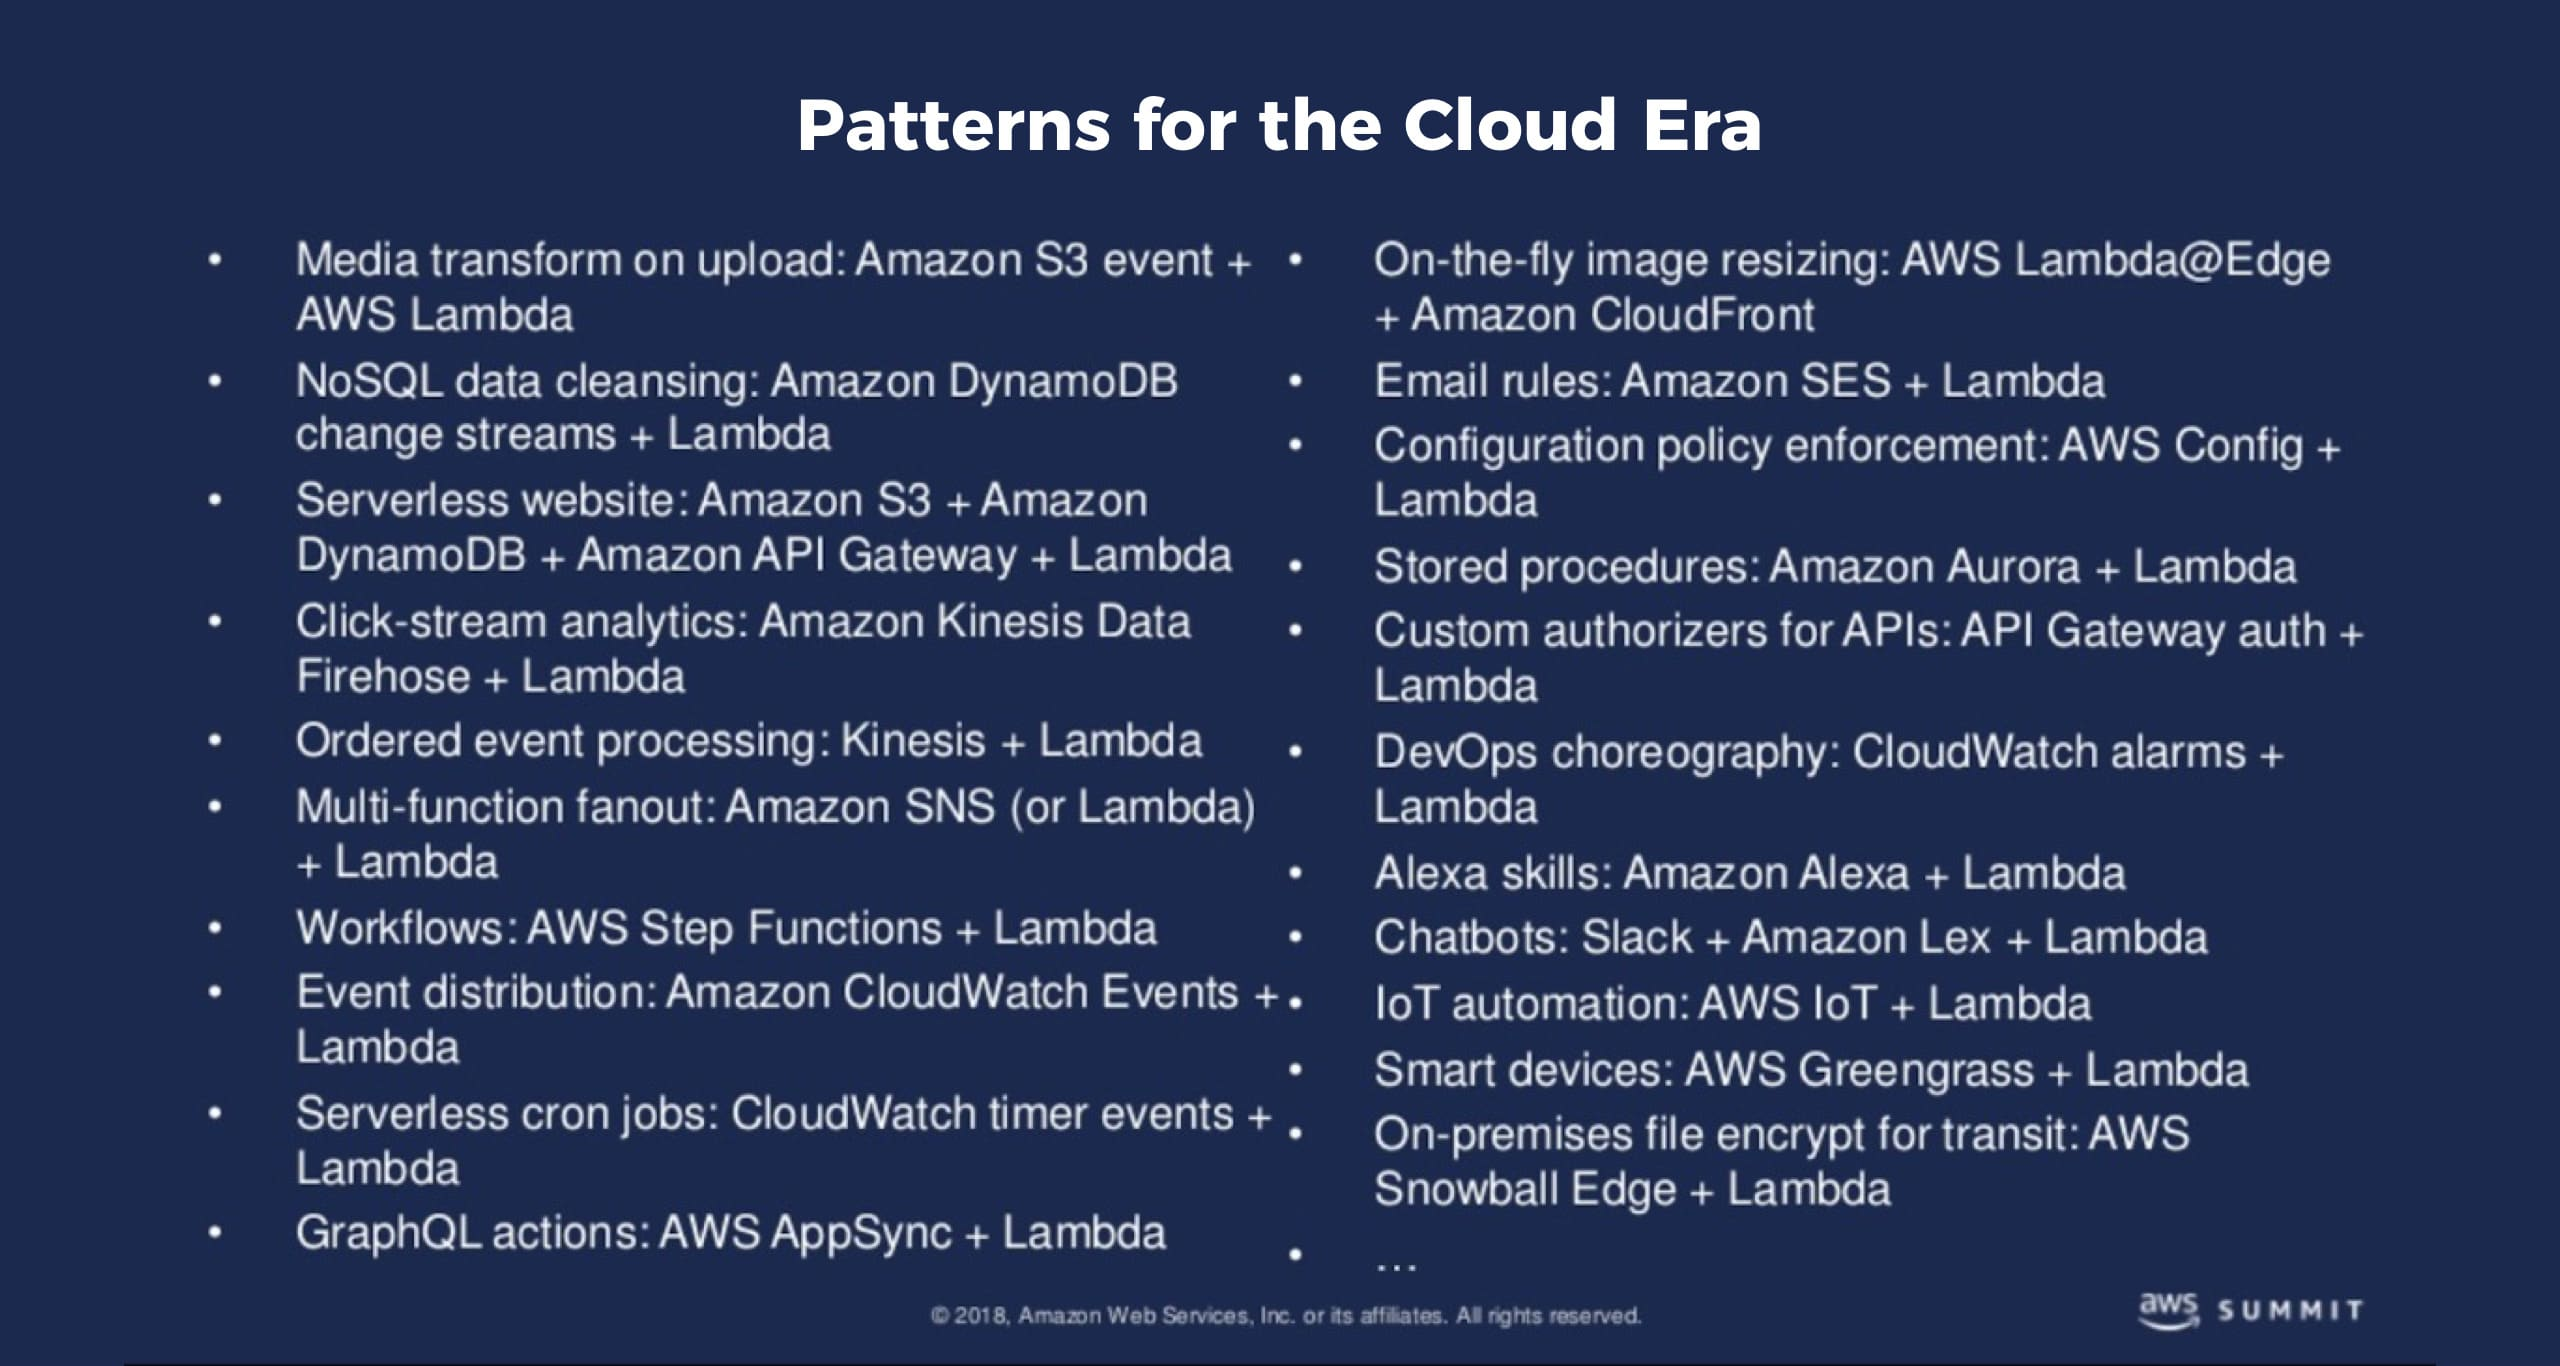 Patterns of Cloud Era